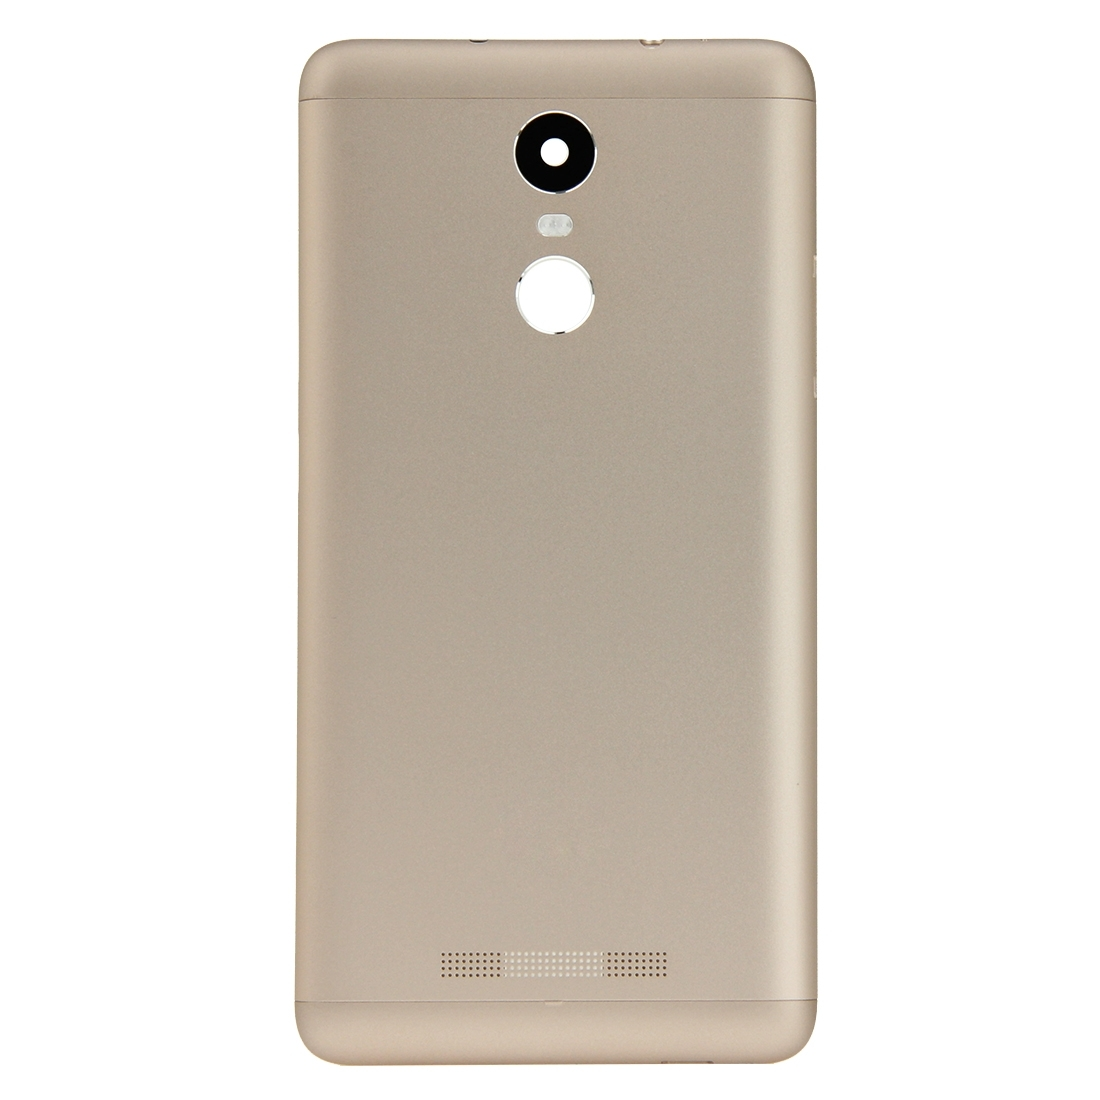 Xiaomi Redmi Note 3 Note3 Original Metal Back Rear Battery Housing Protective Door with Flash Cover Replacement Repair Parts